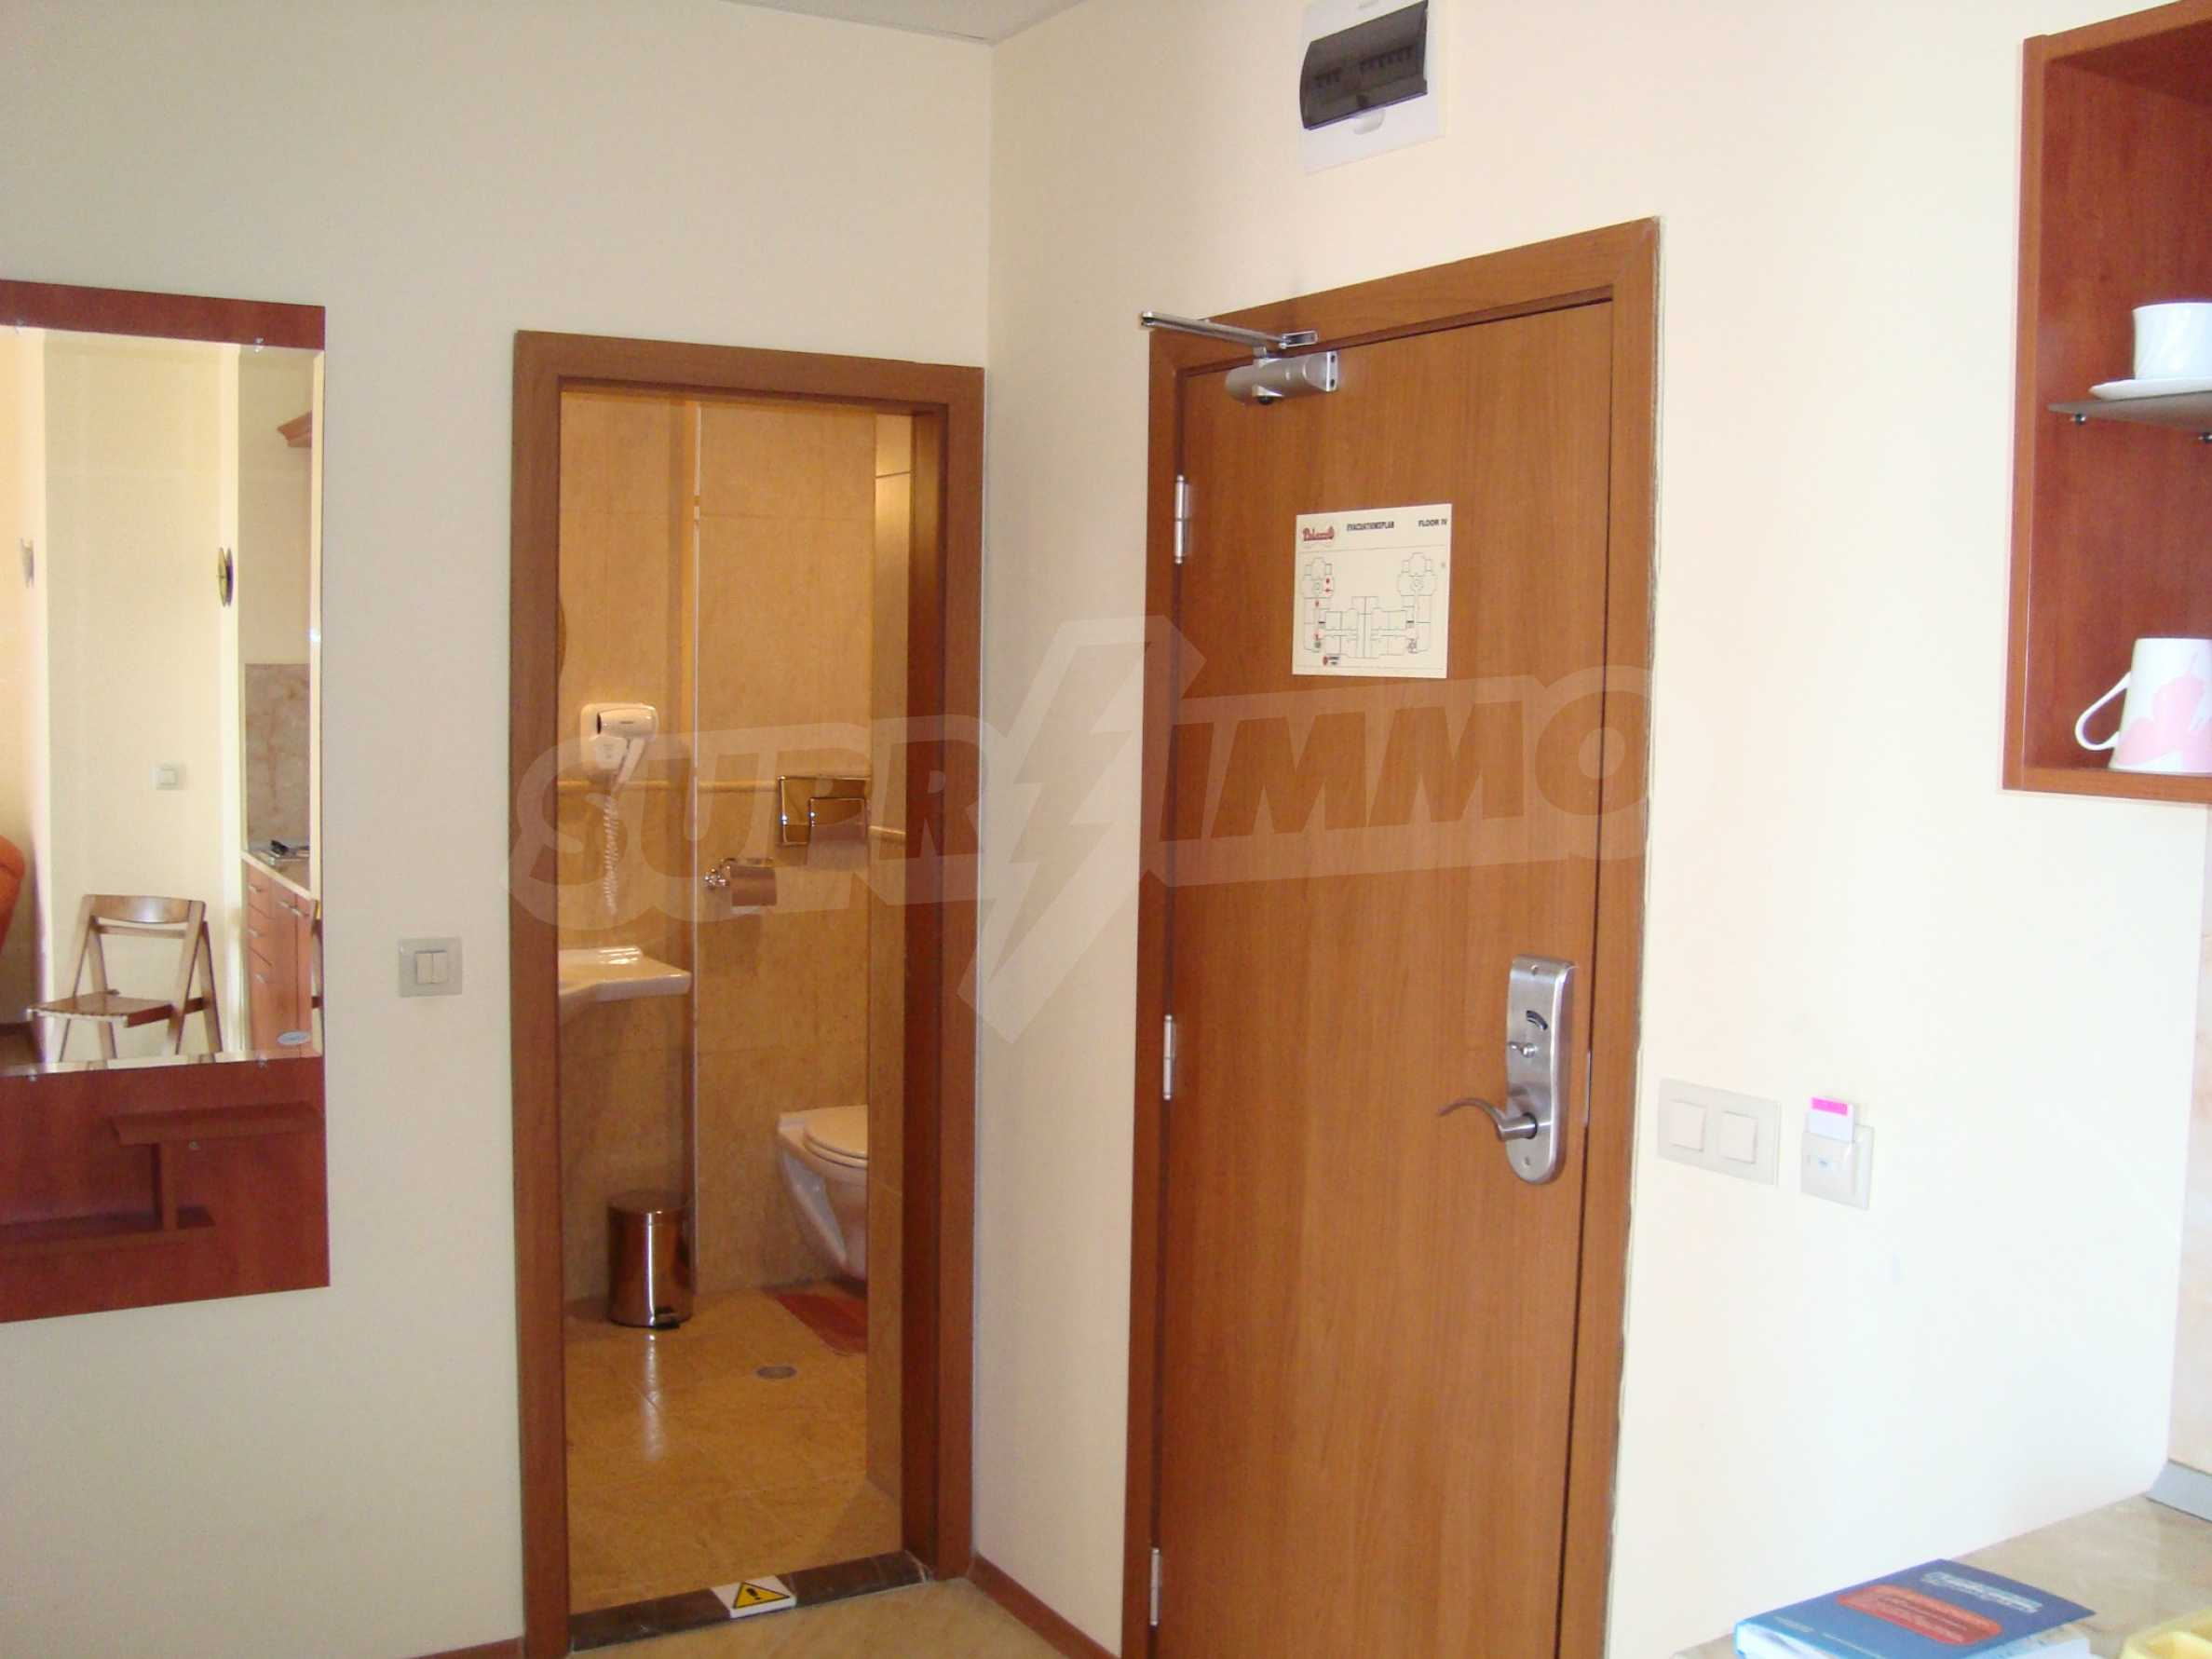 One-bedroom apartment in Palazzo 1 complex in Sunny beach 10